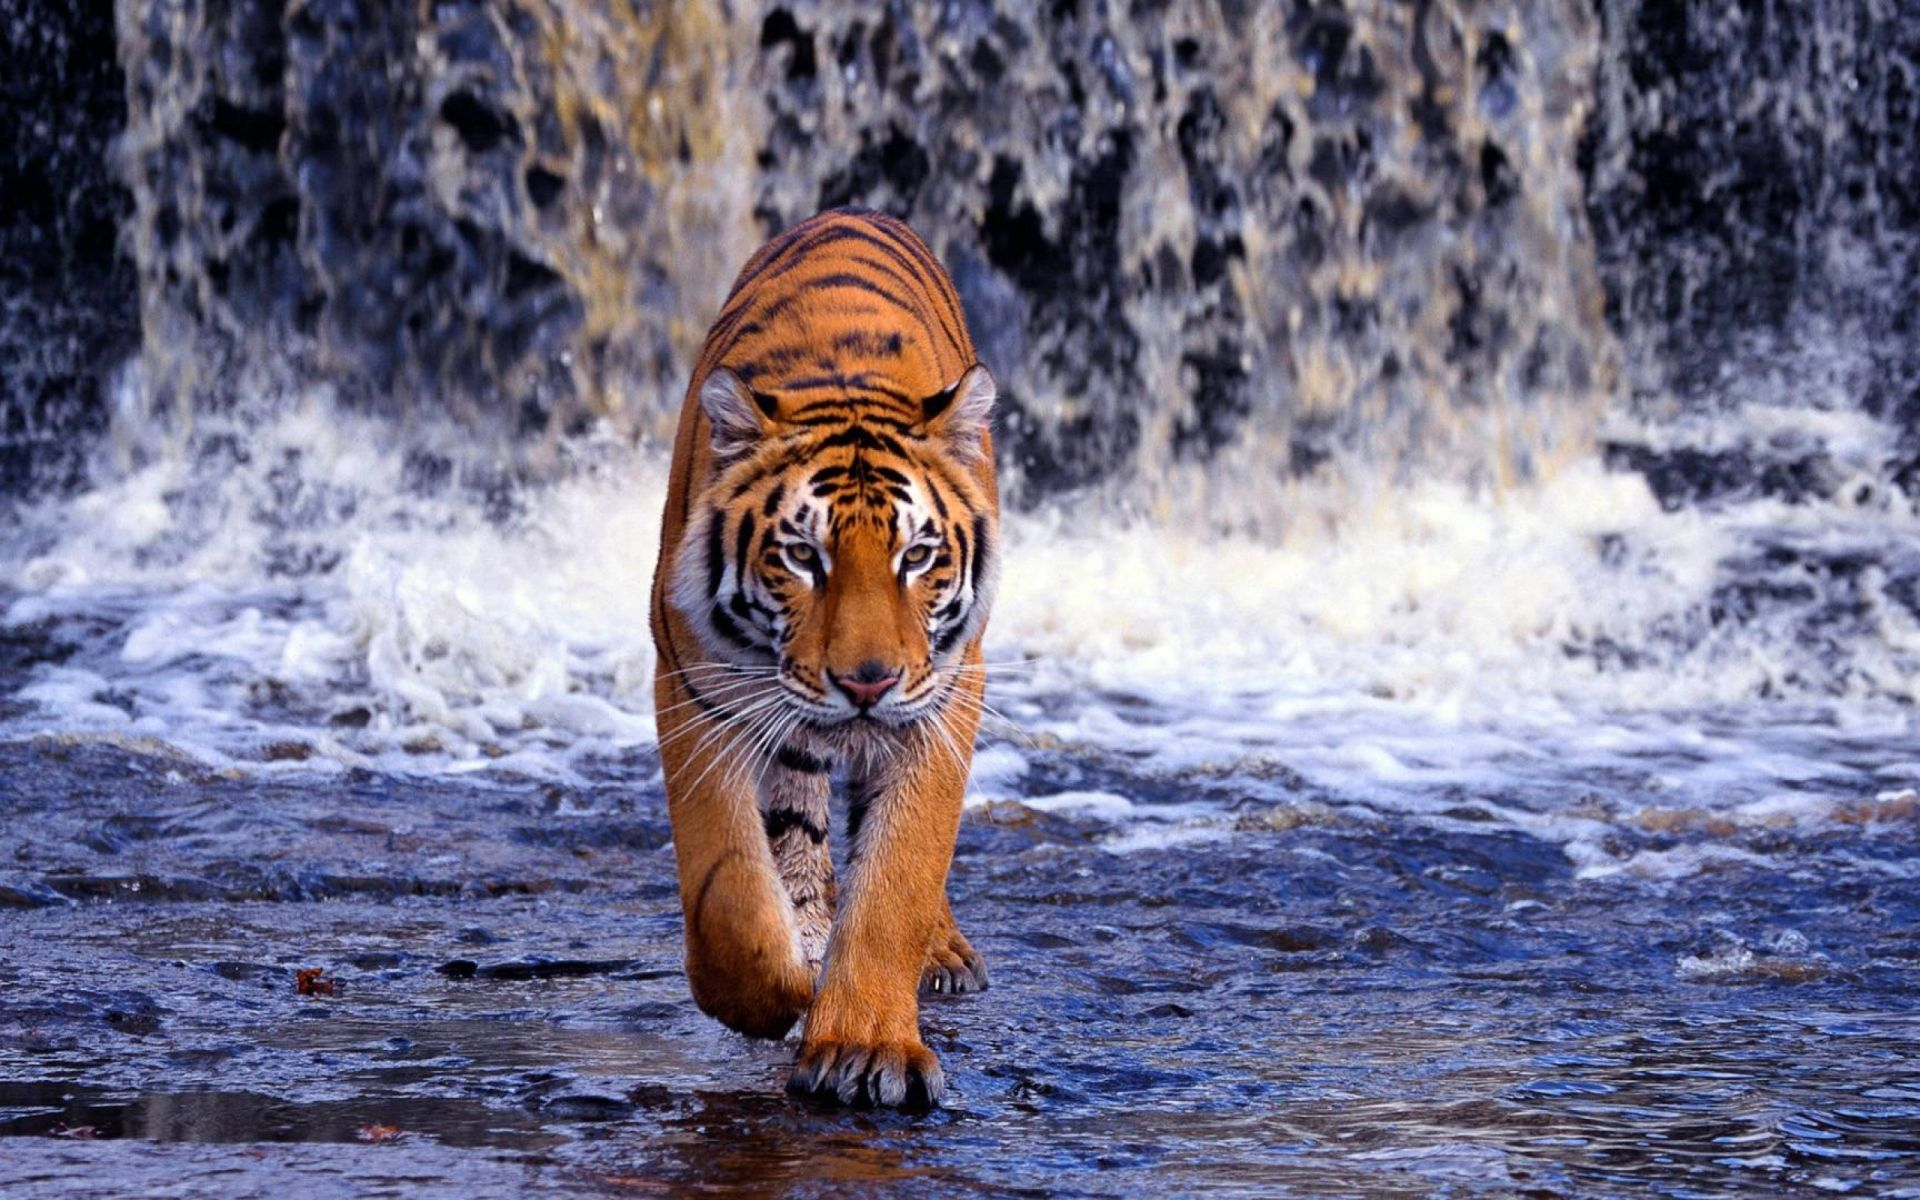 Tiger is coming, Free Download Wallpaper